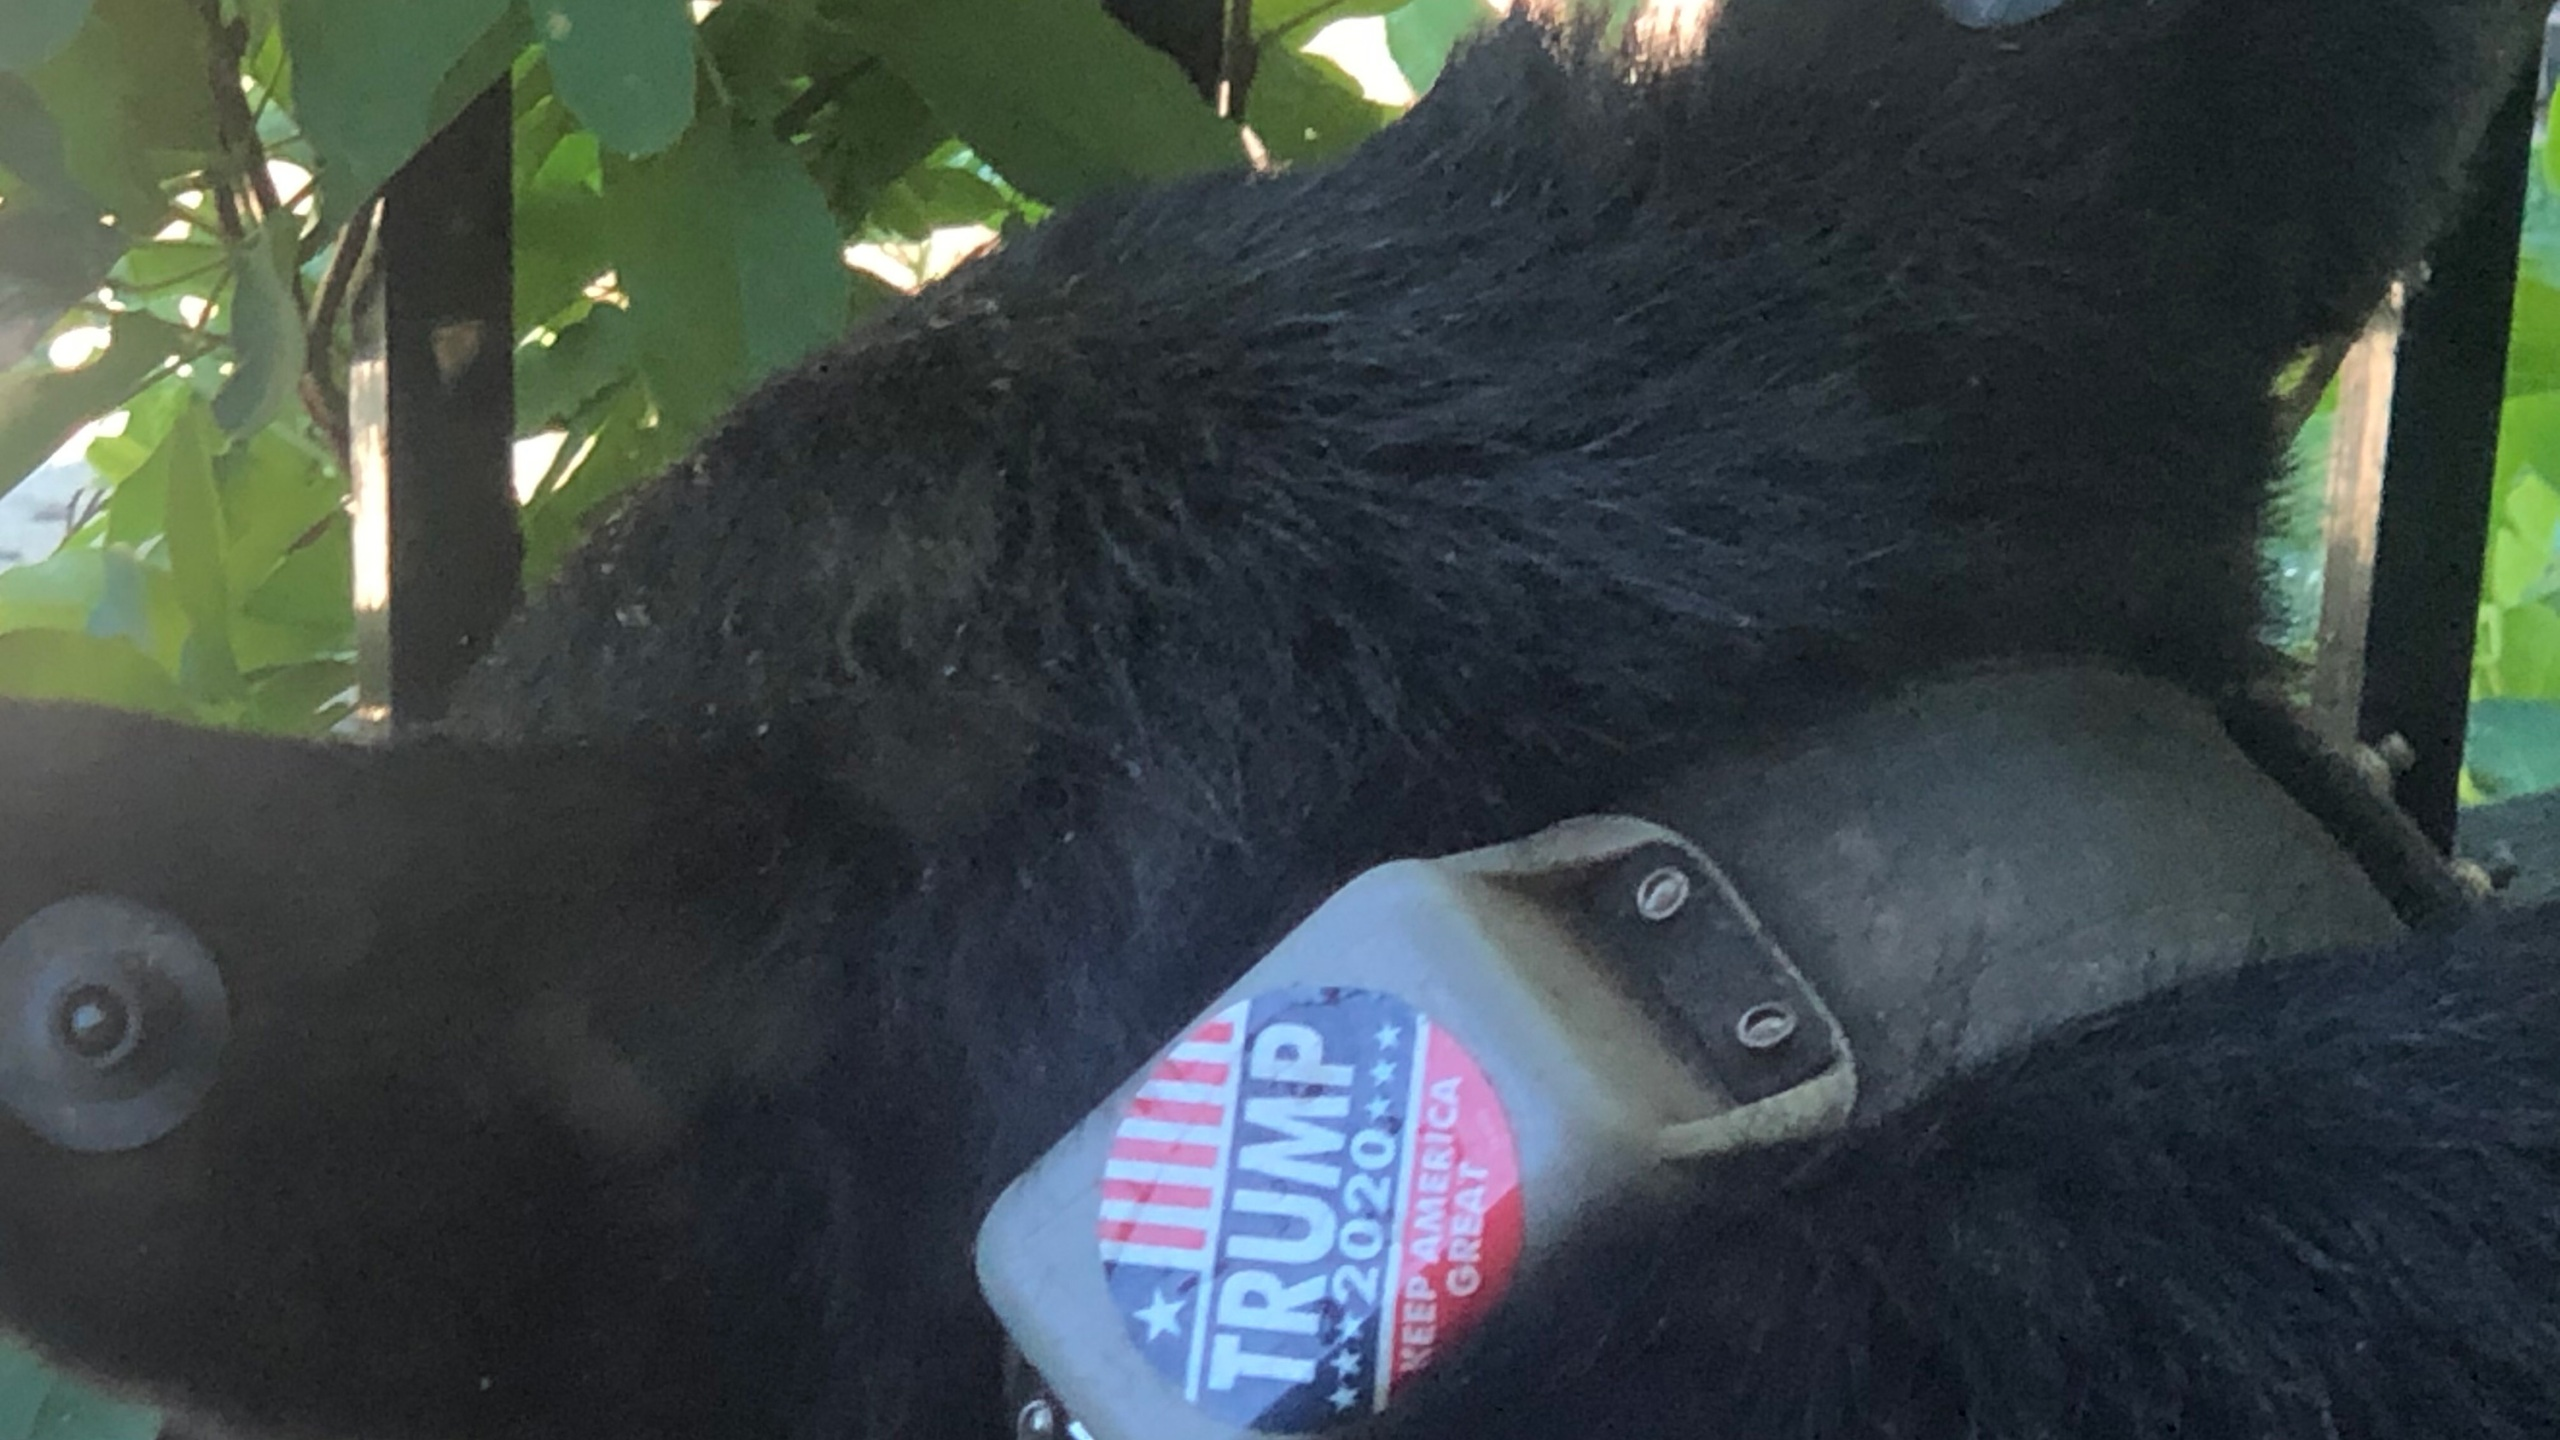 The Trump 2020 sticker was seen attached to the bear's tracking collar, according to photographs obtained by CNN. (Shelia Chapman)